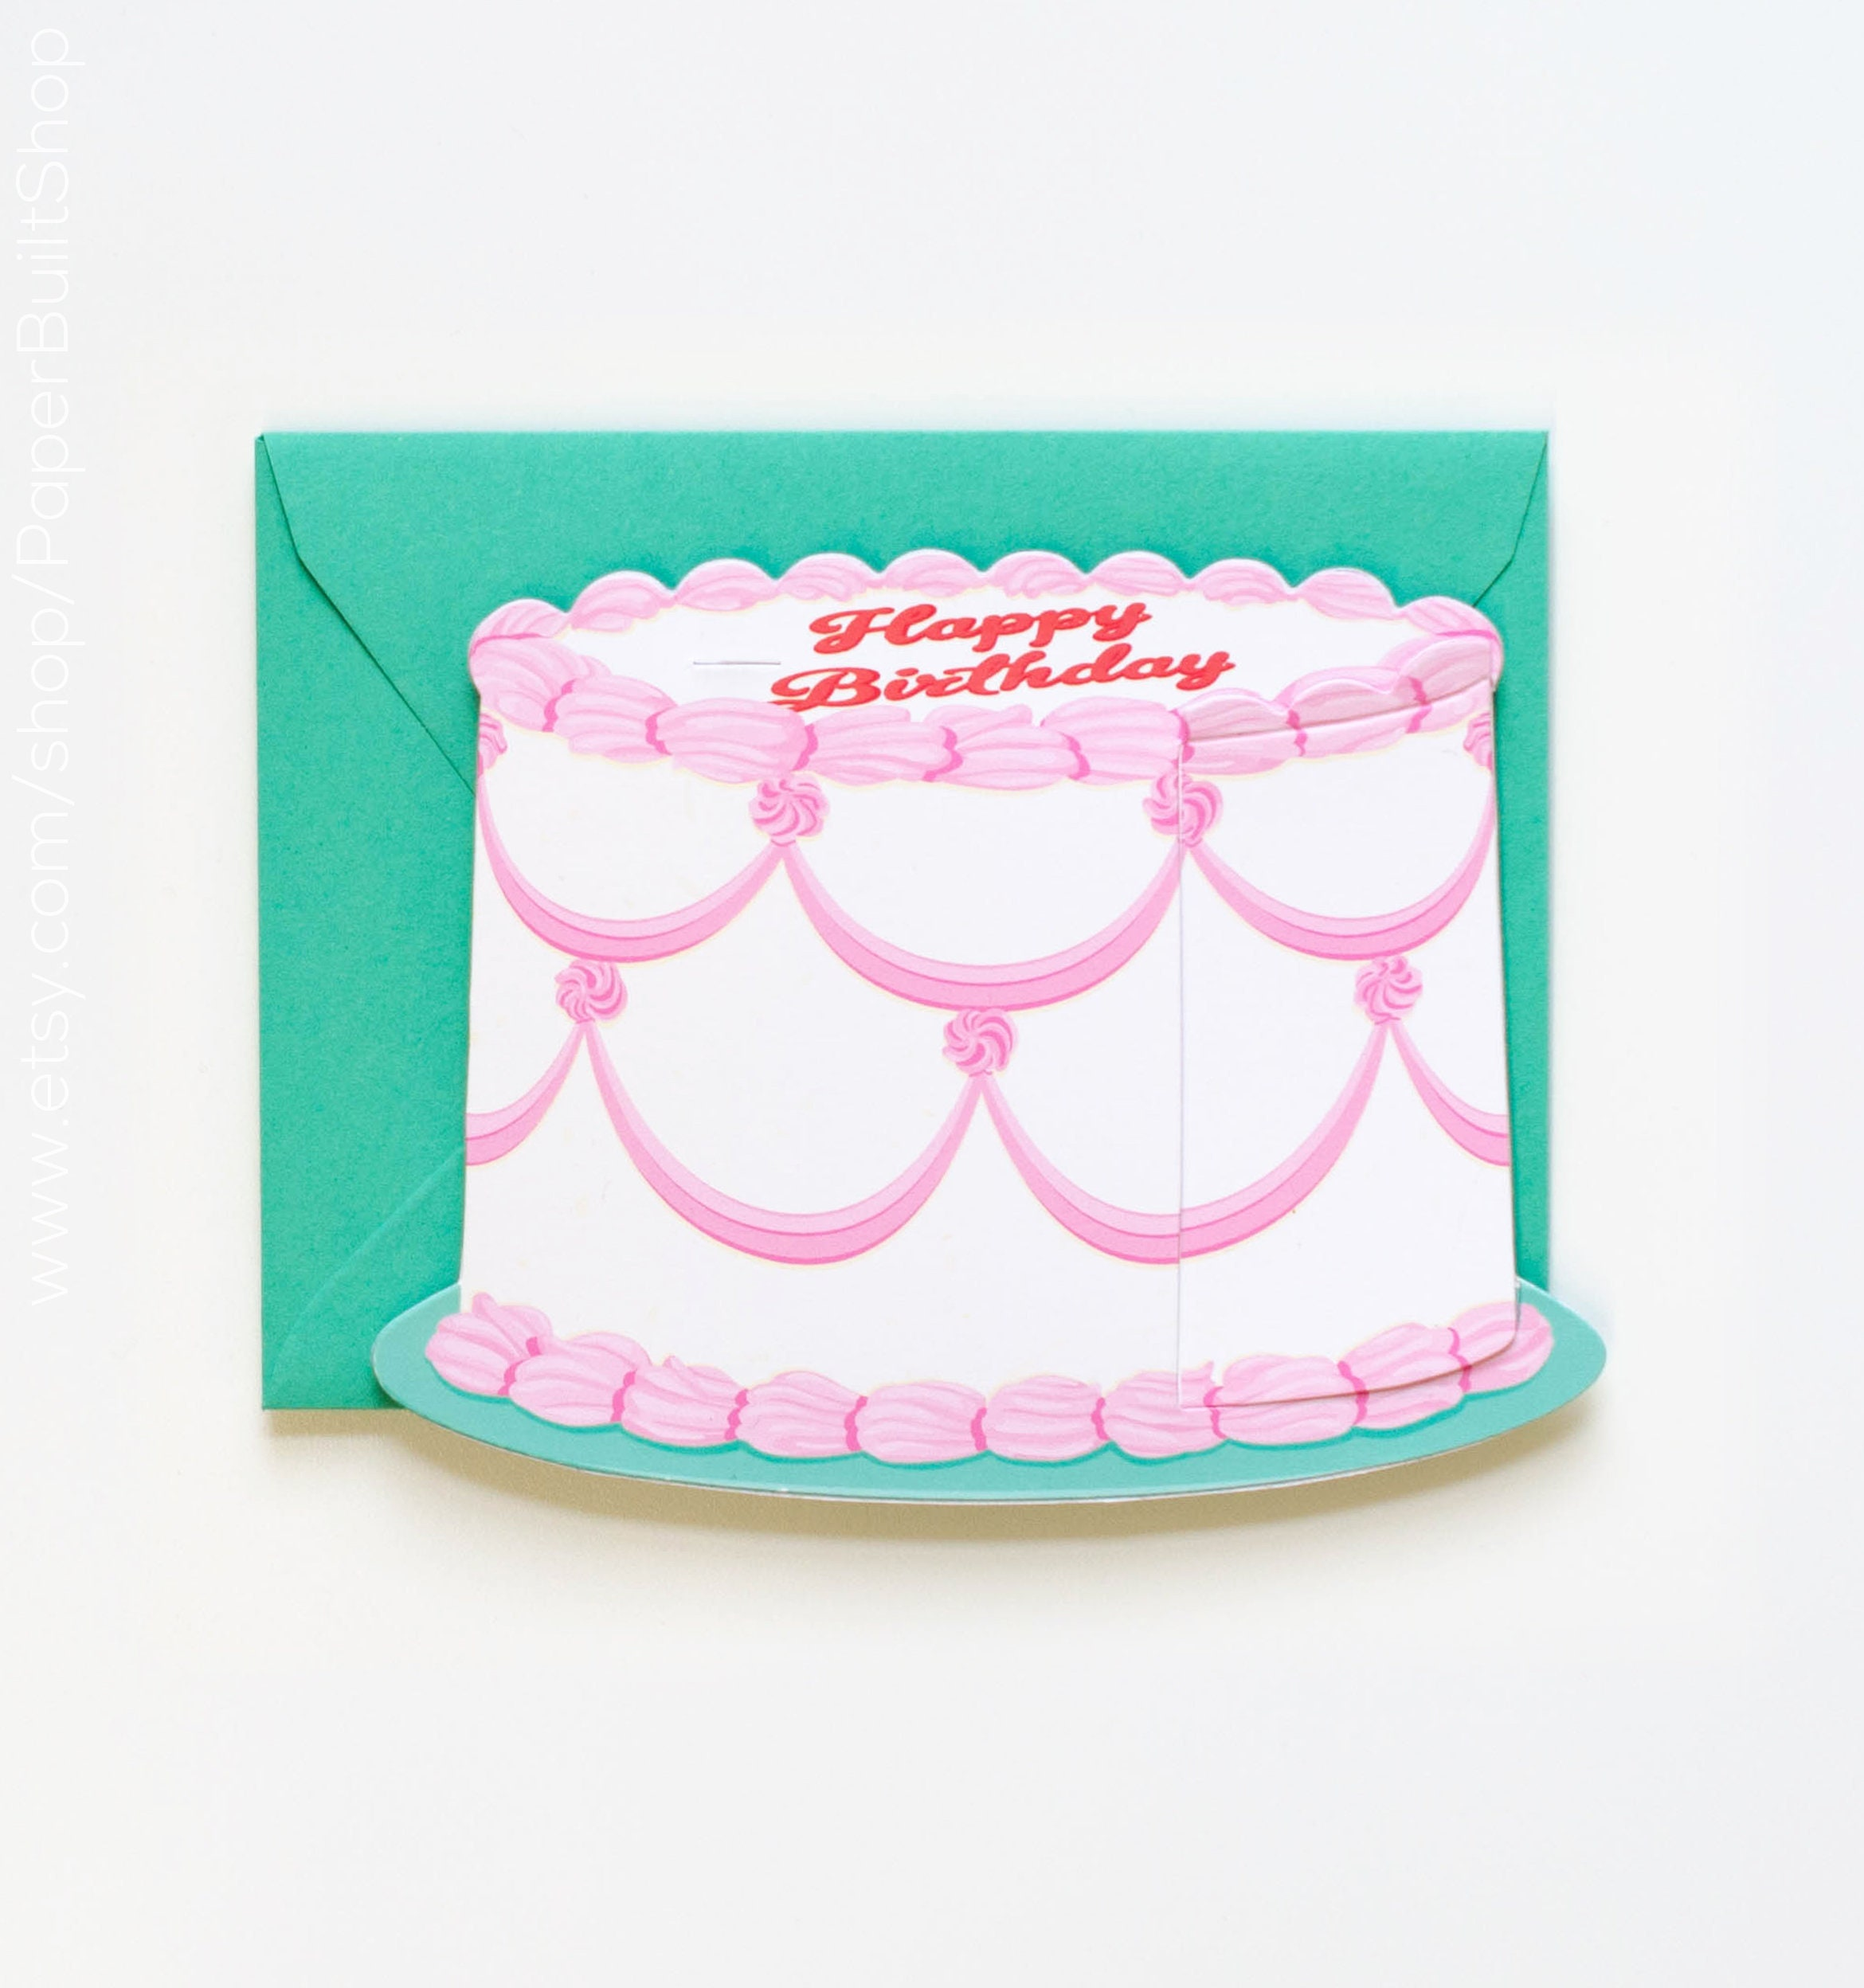 Special Birthday Cake Card Die Cut Greeting